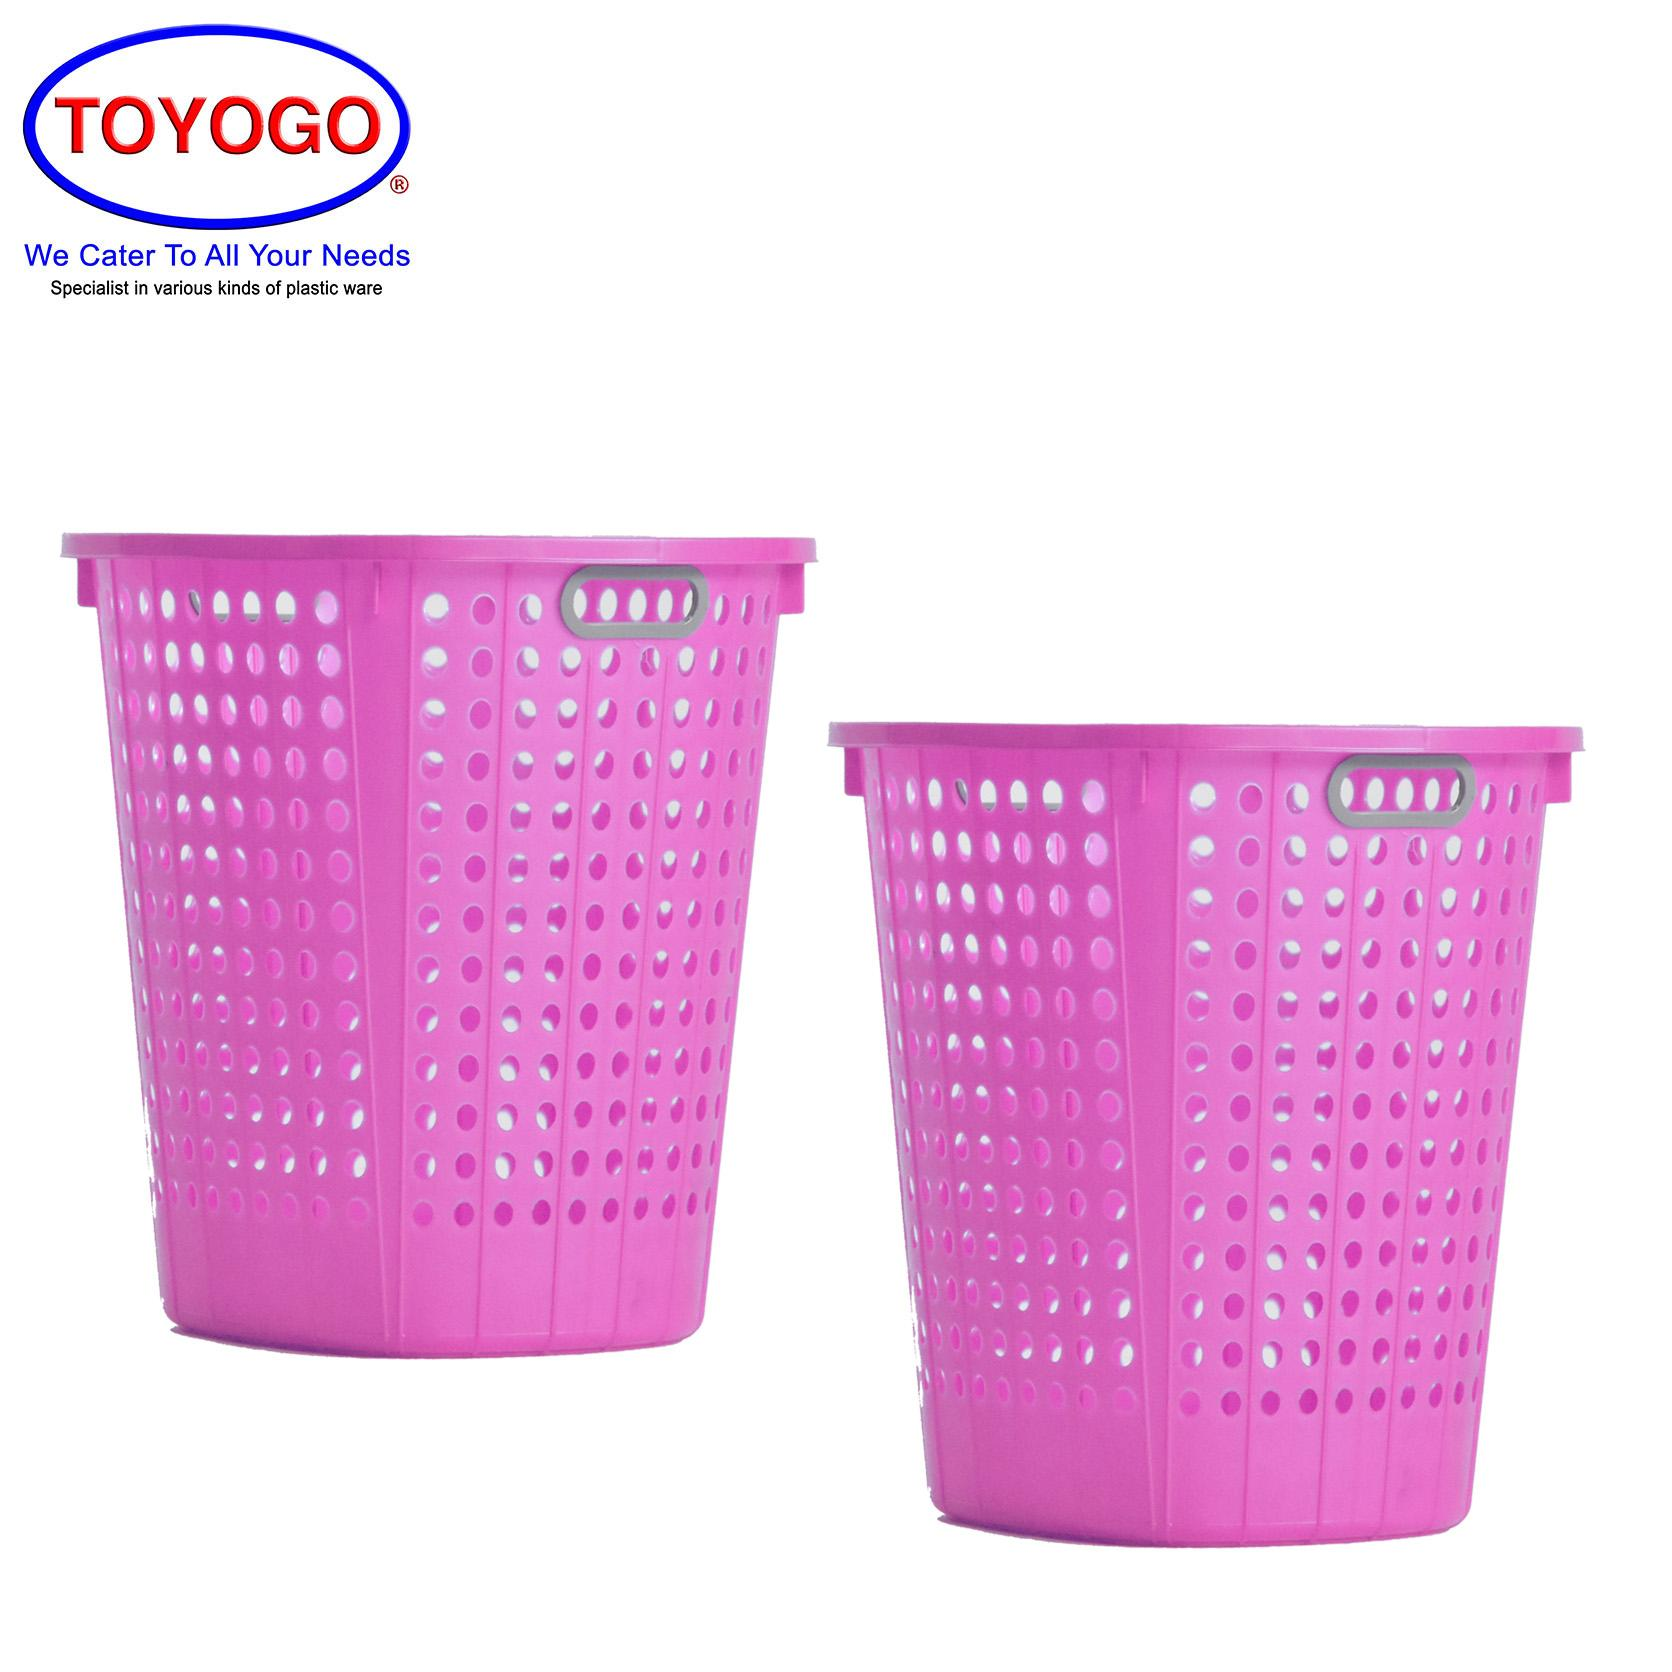 Toyogo Plastic Laundry Basket (Bundle of 2) (4317)